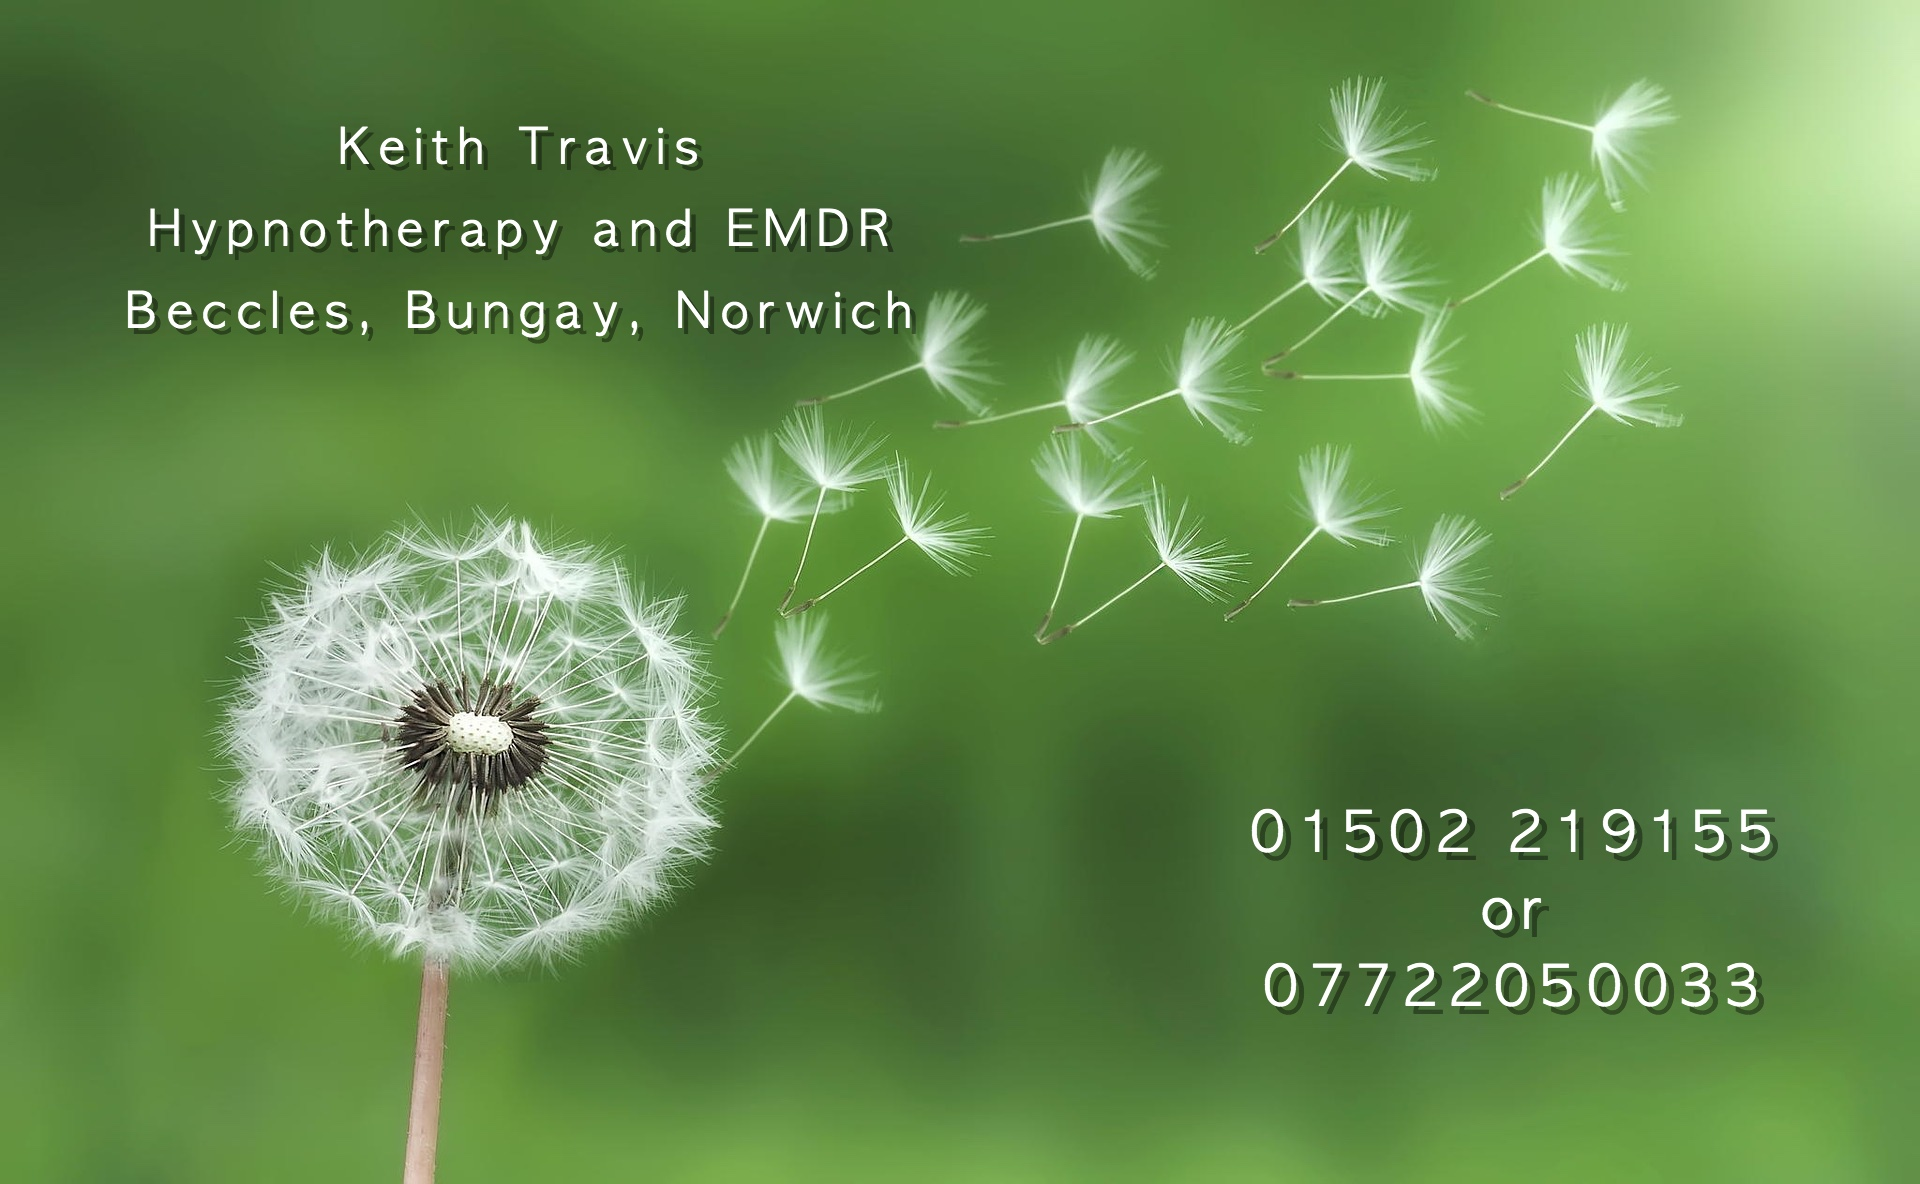 Hypnotherapy And Emdr - Hypnotherapy to Lose Weight